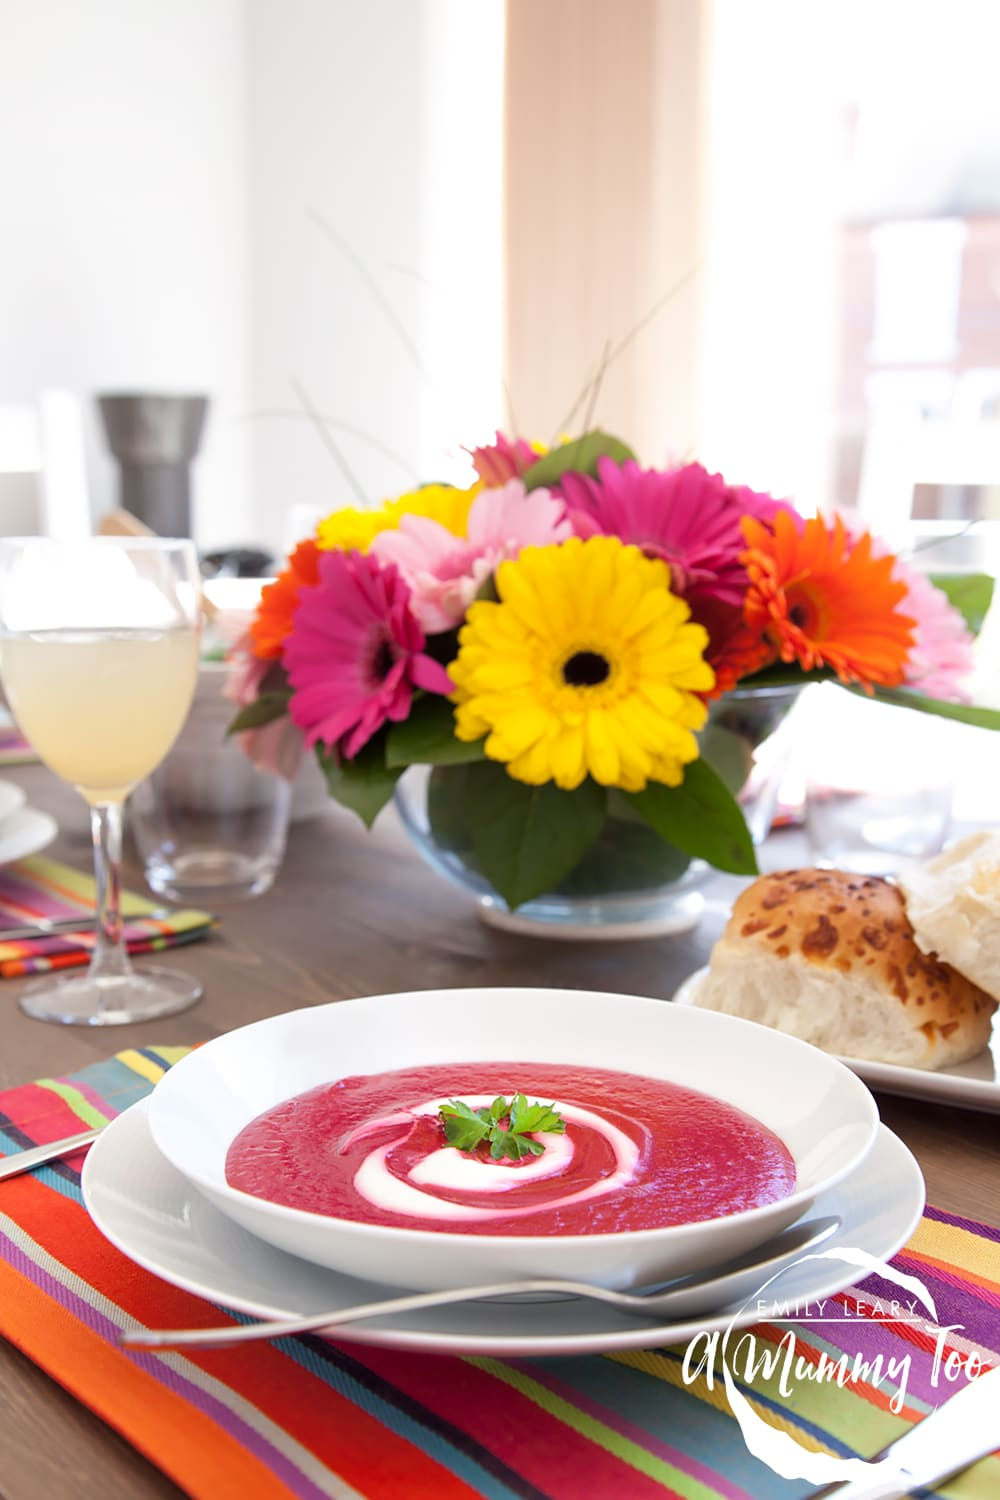 Roasted beetroot soup served at a colourful dinner party